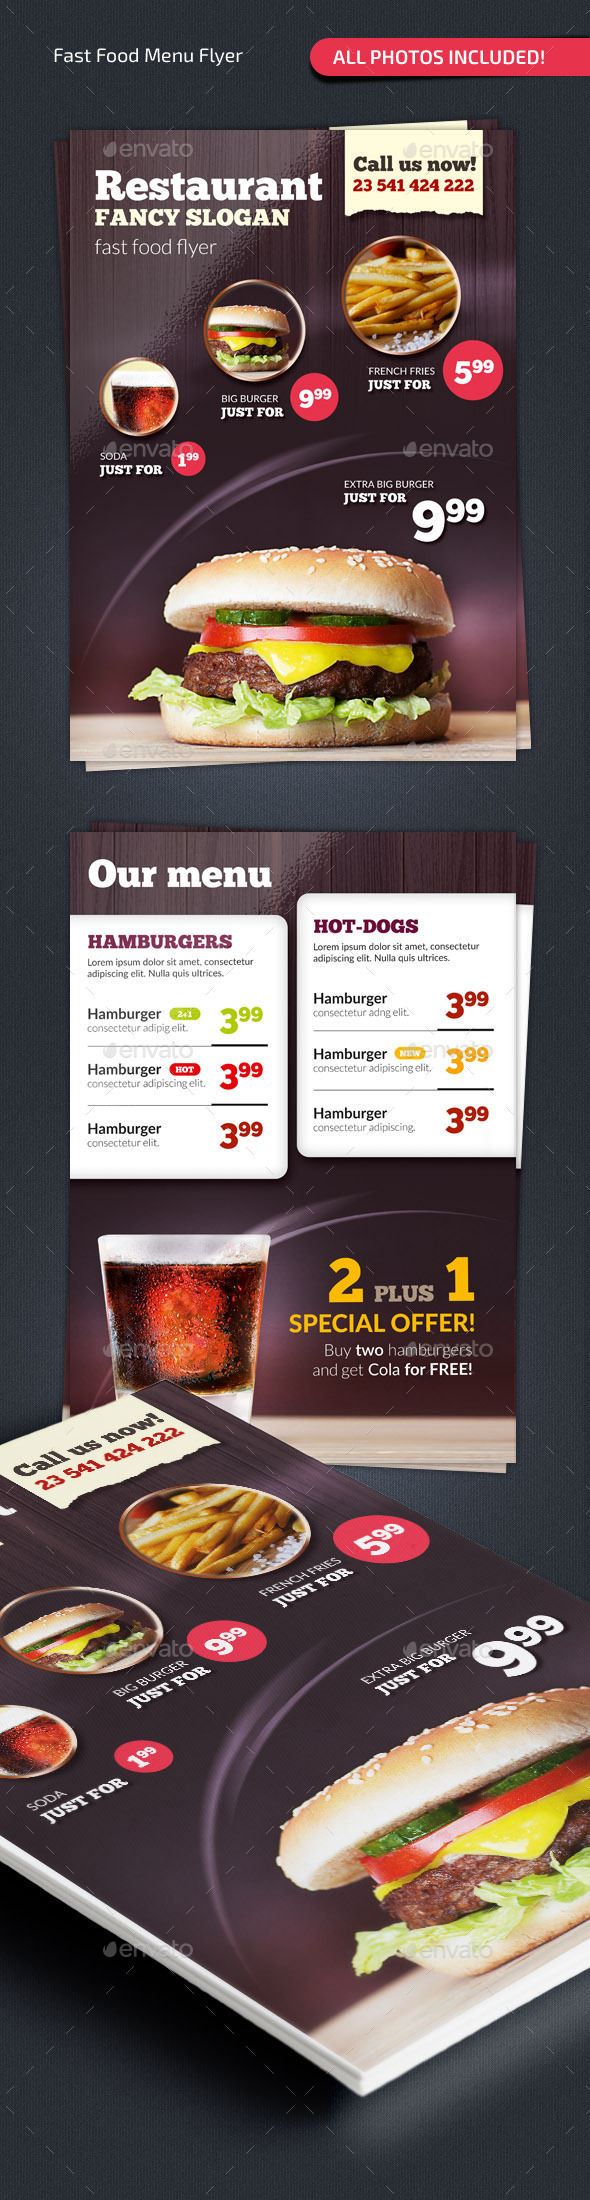 Fast Food Menu Flyer #2 - Food Menus Print Templates